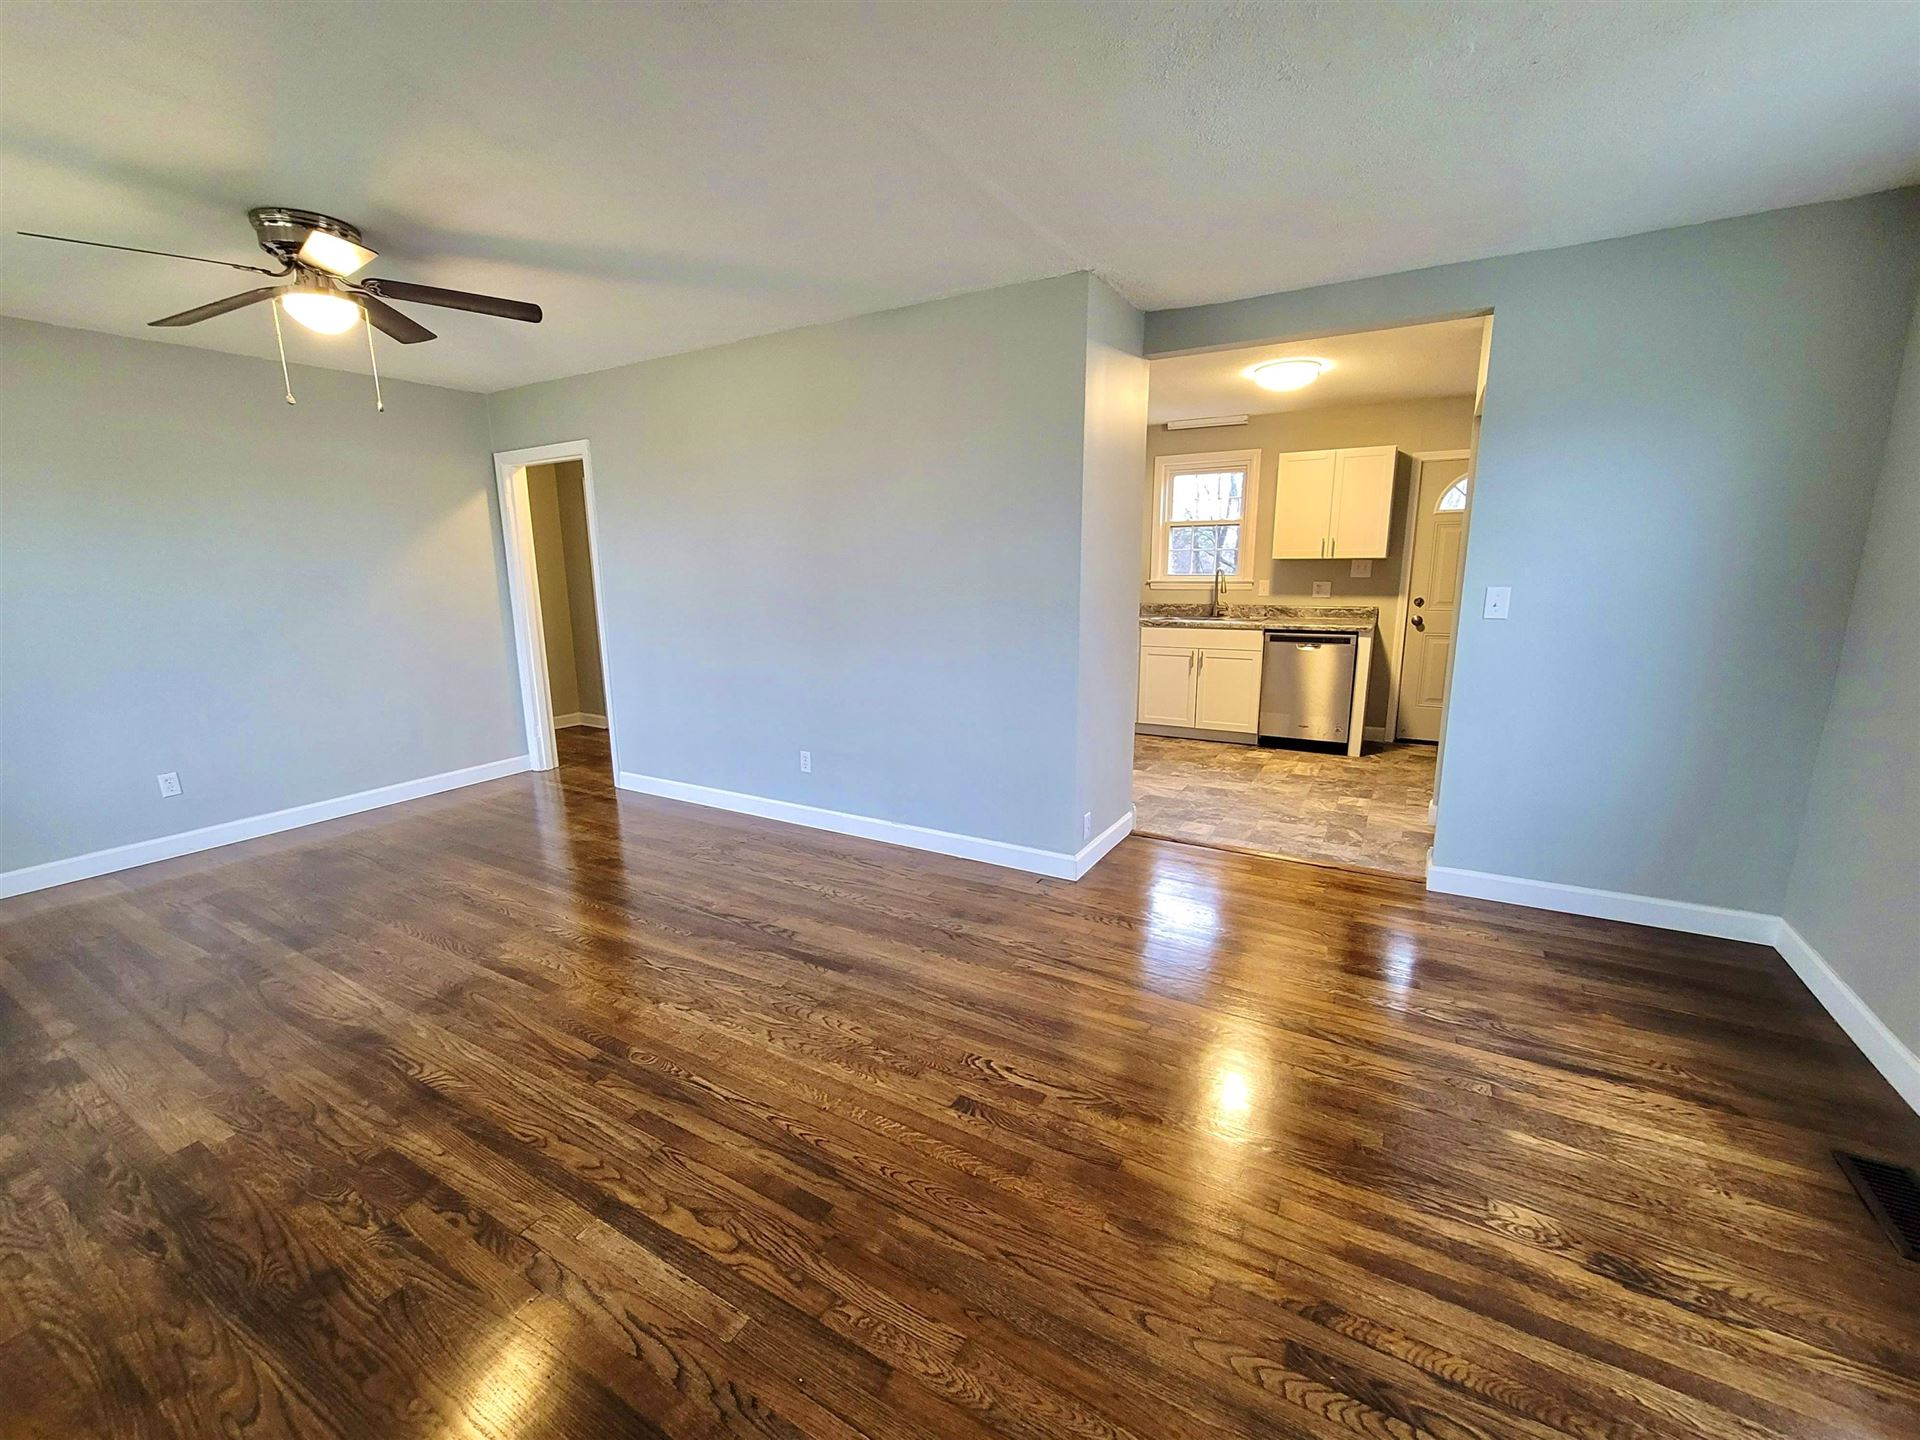 Photo of 1943 Fine Ave, Knoxville, TN 37917 (MLS # 1138385)